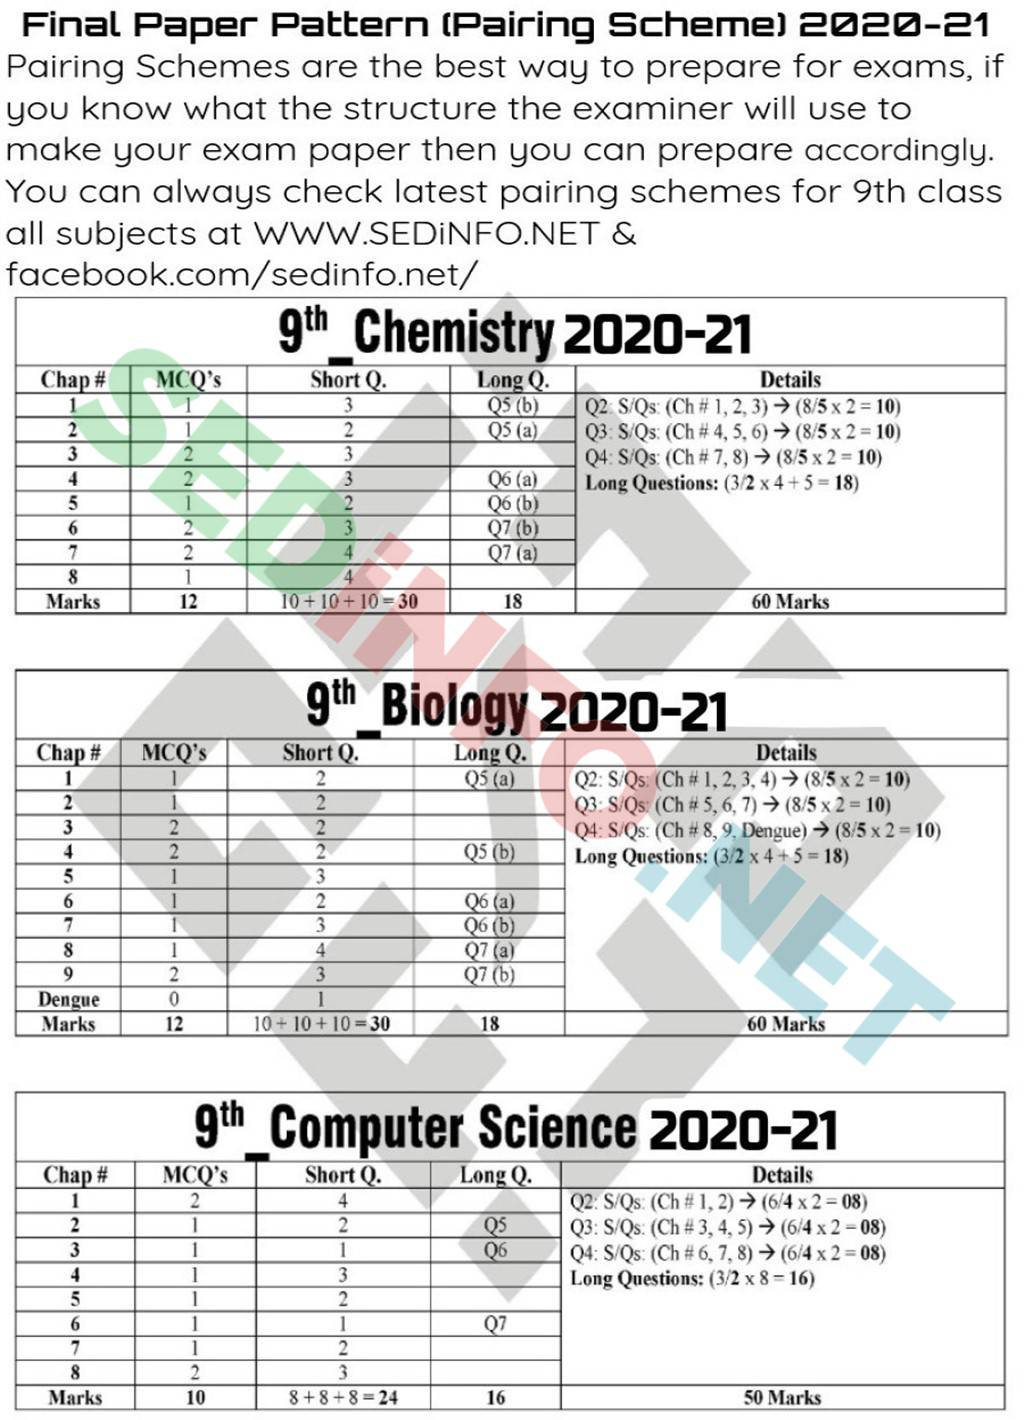 9th-Pairing-Schemes-2020-21-Chemistry-Biology-Computer-Science-Page-2